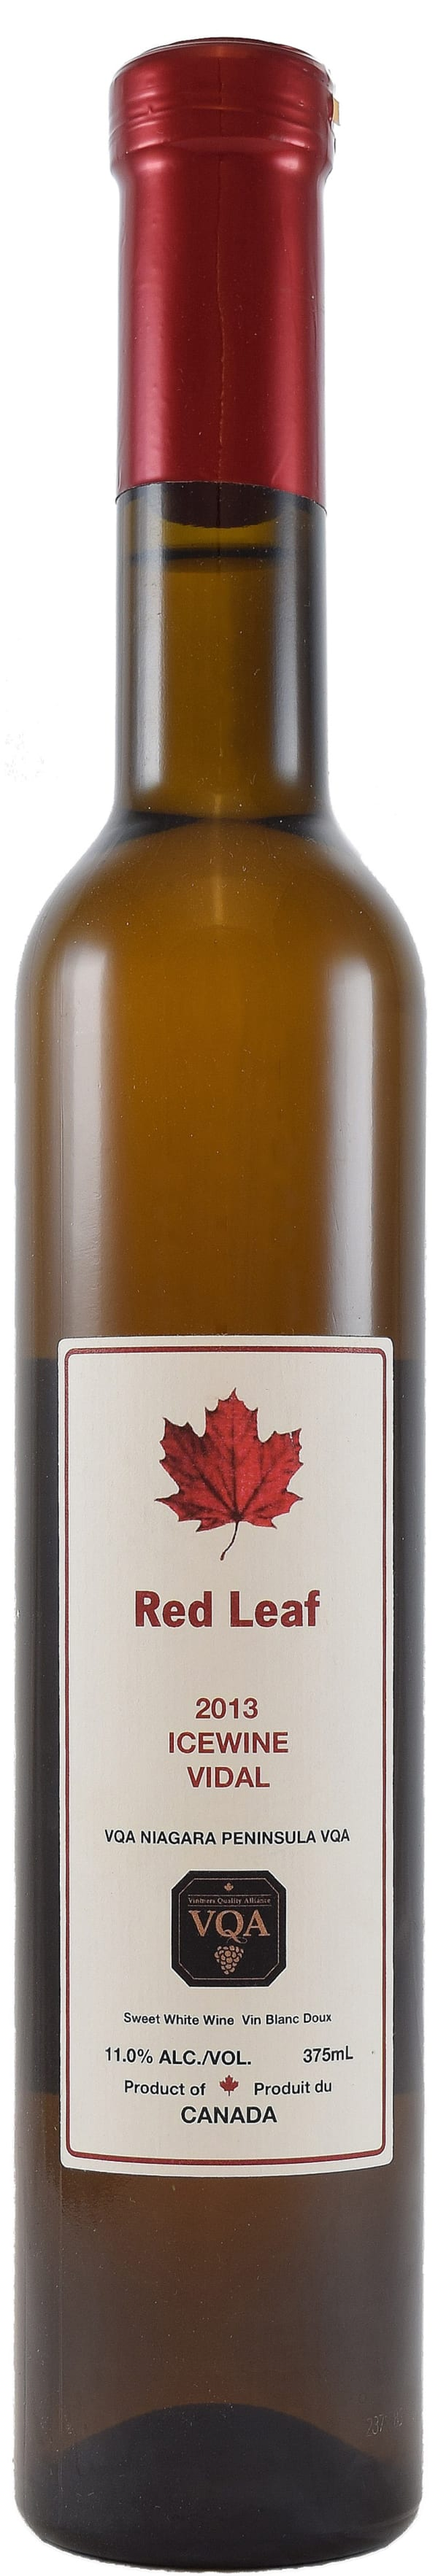 Red Leaf Vidal Icewine 2015